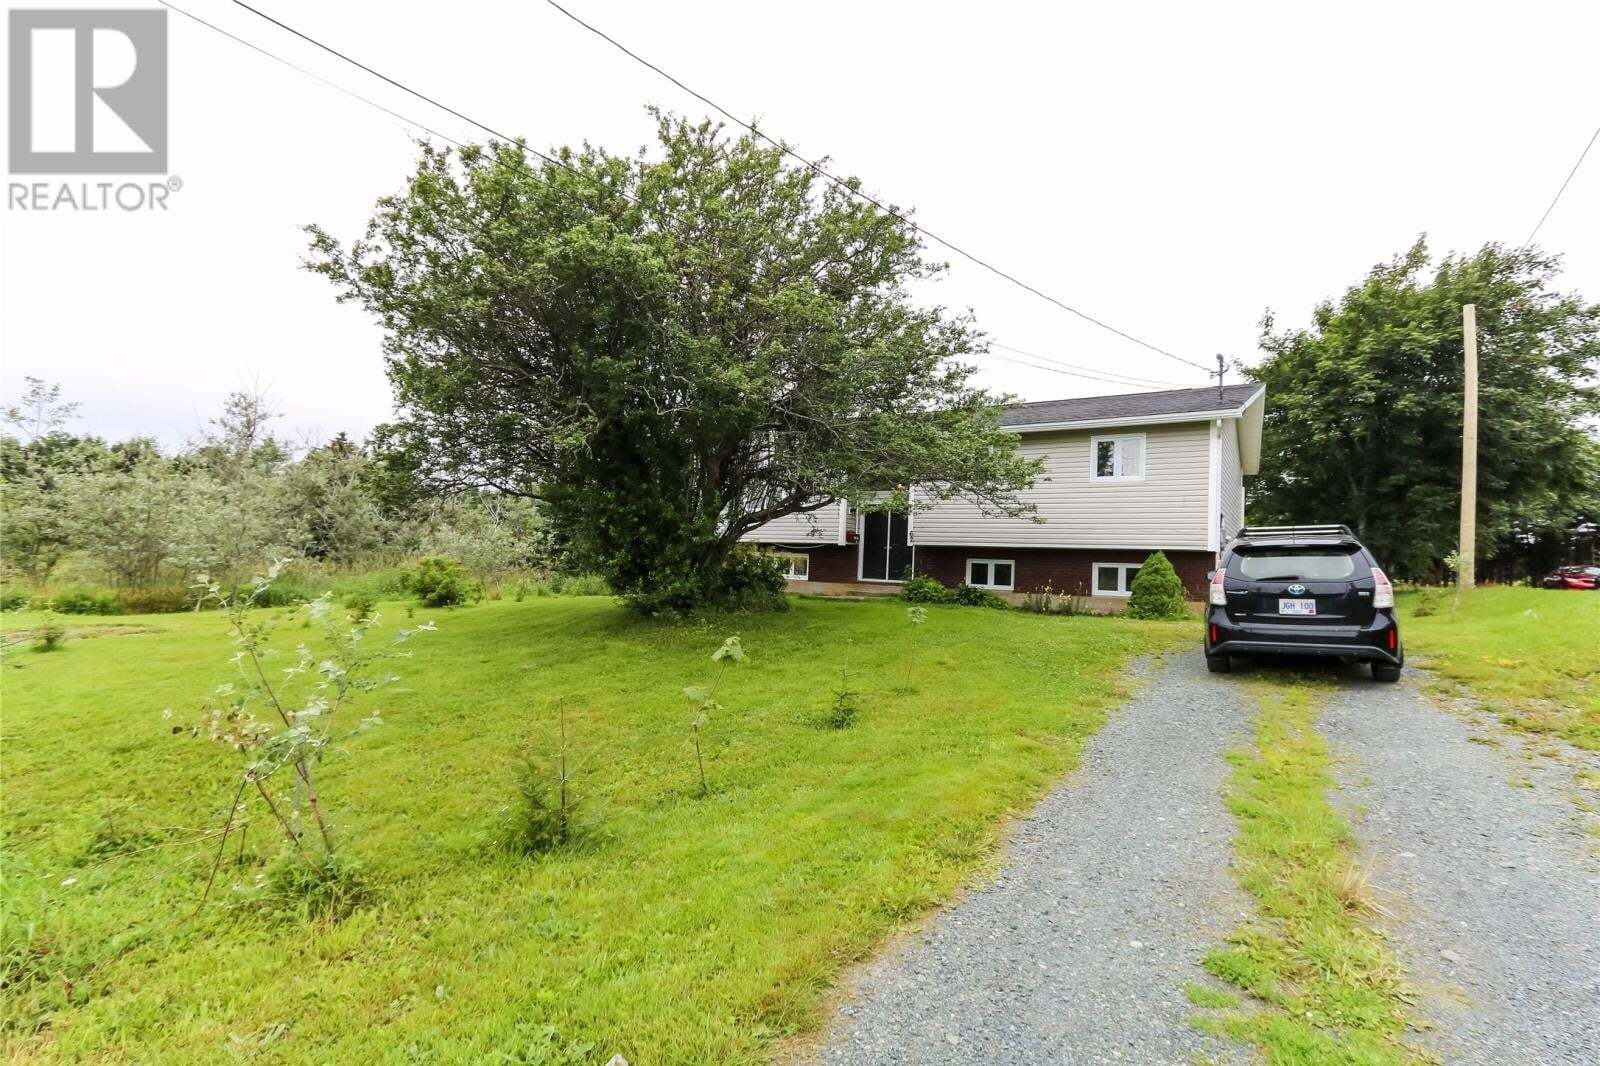 House for sale at 62 Old Bay Bulls Rd St. John's Newfoundland - MLS: 1218310